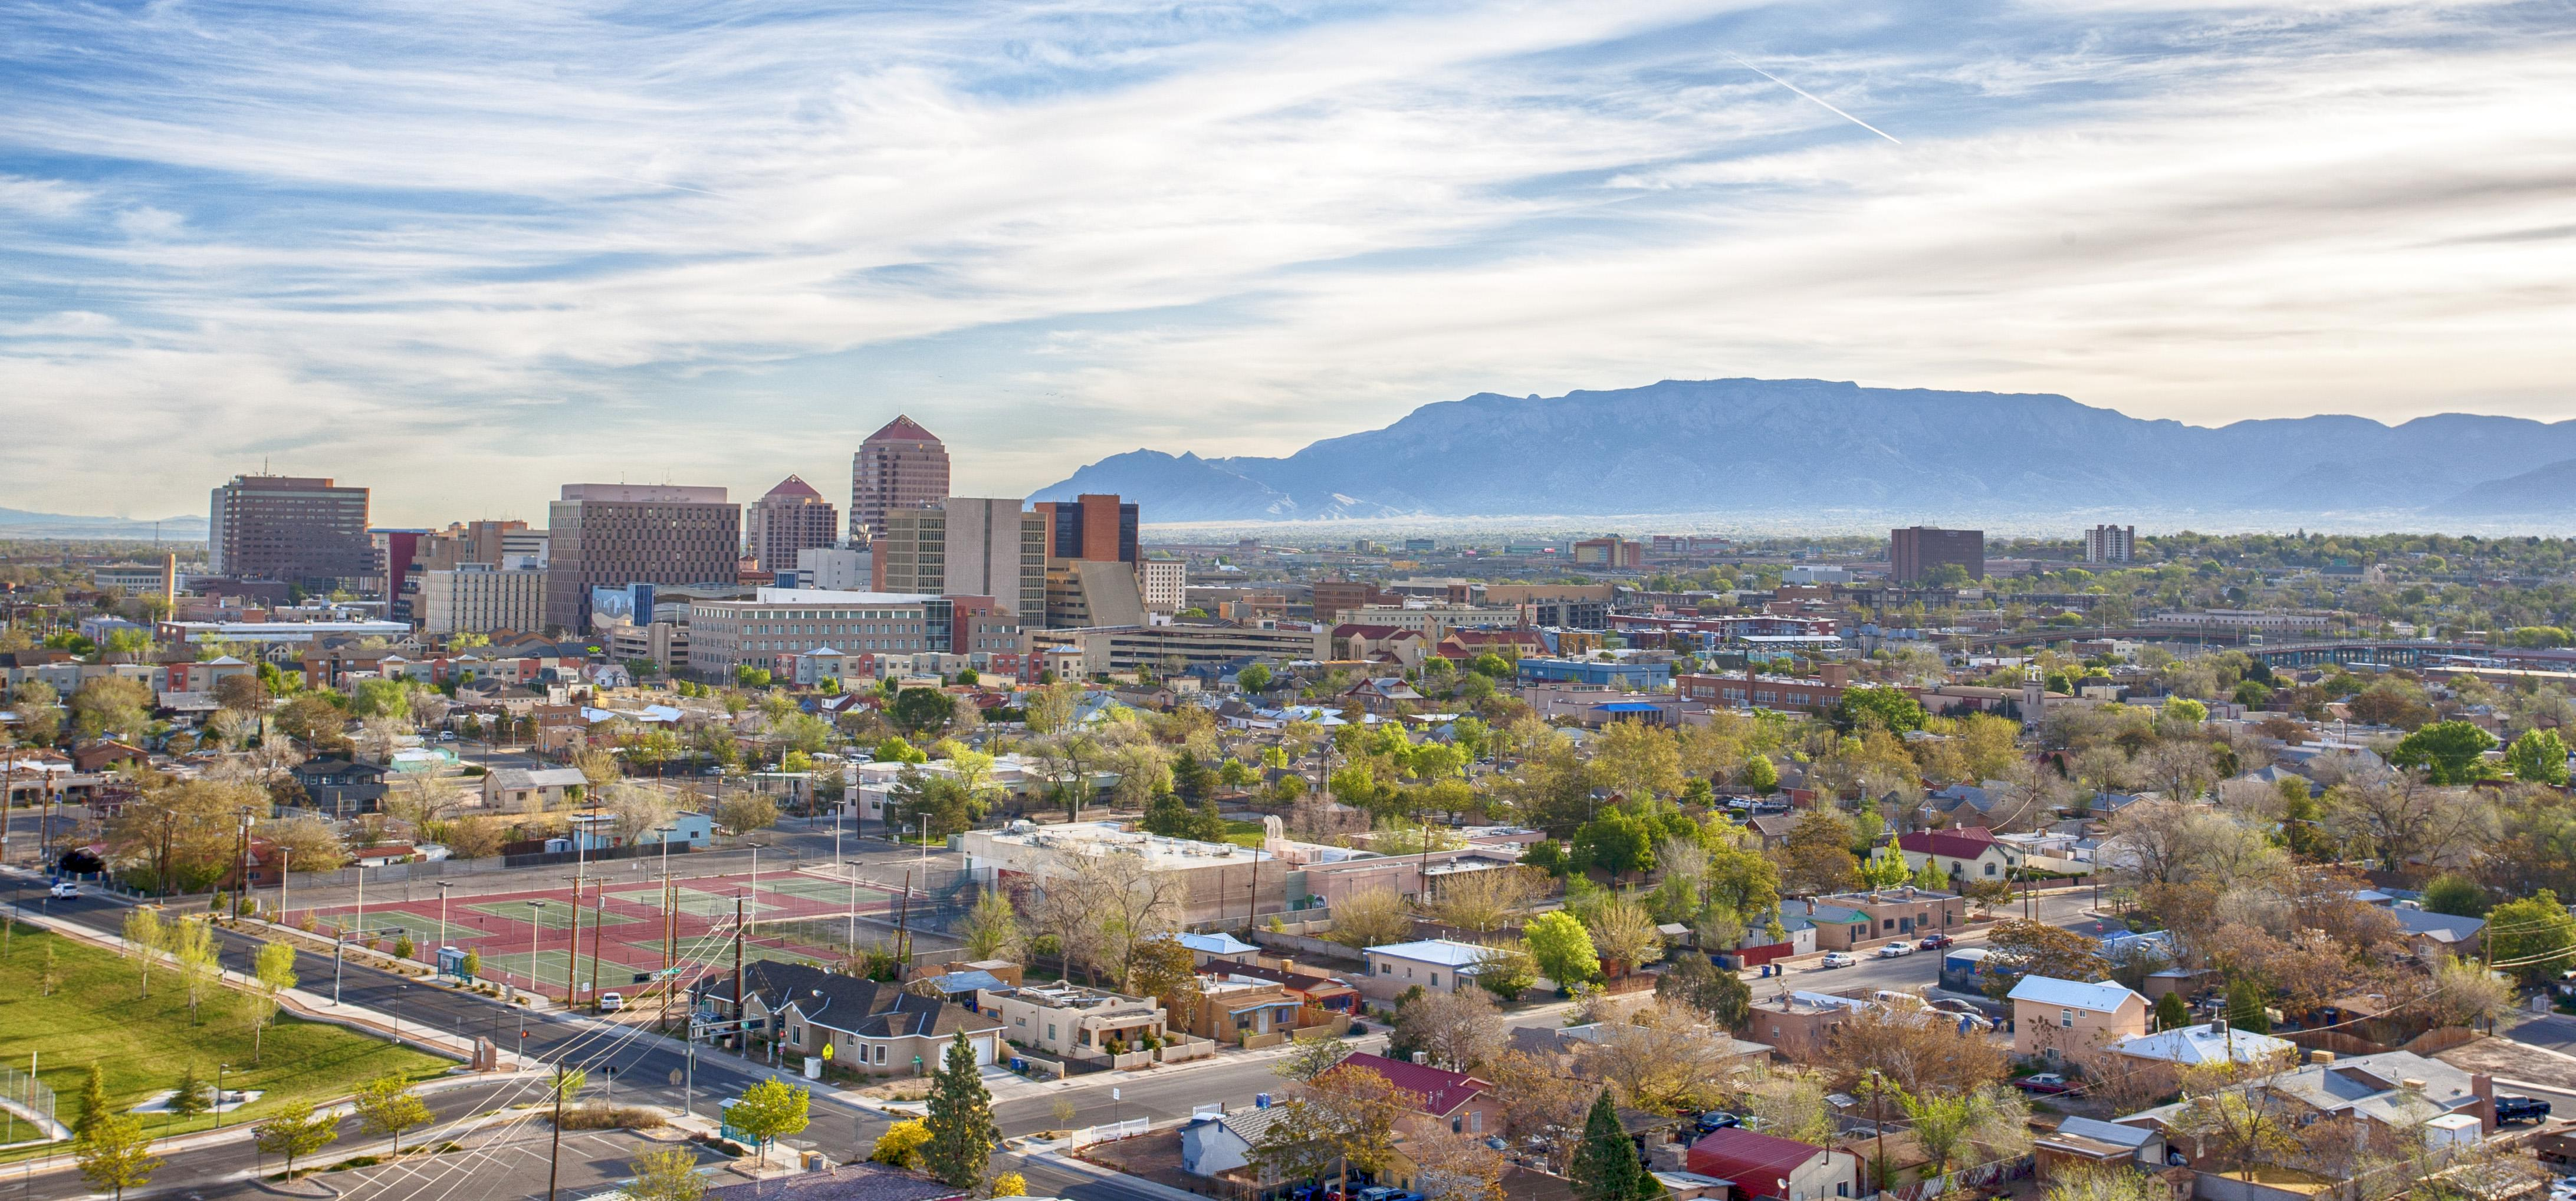 Real Estate Business under the shadow of Beautiful Sandia Mountains in Albuquerque, New Mexico